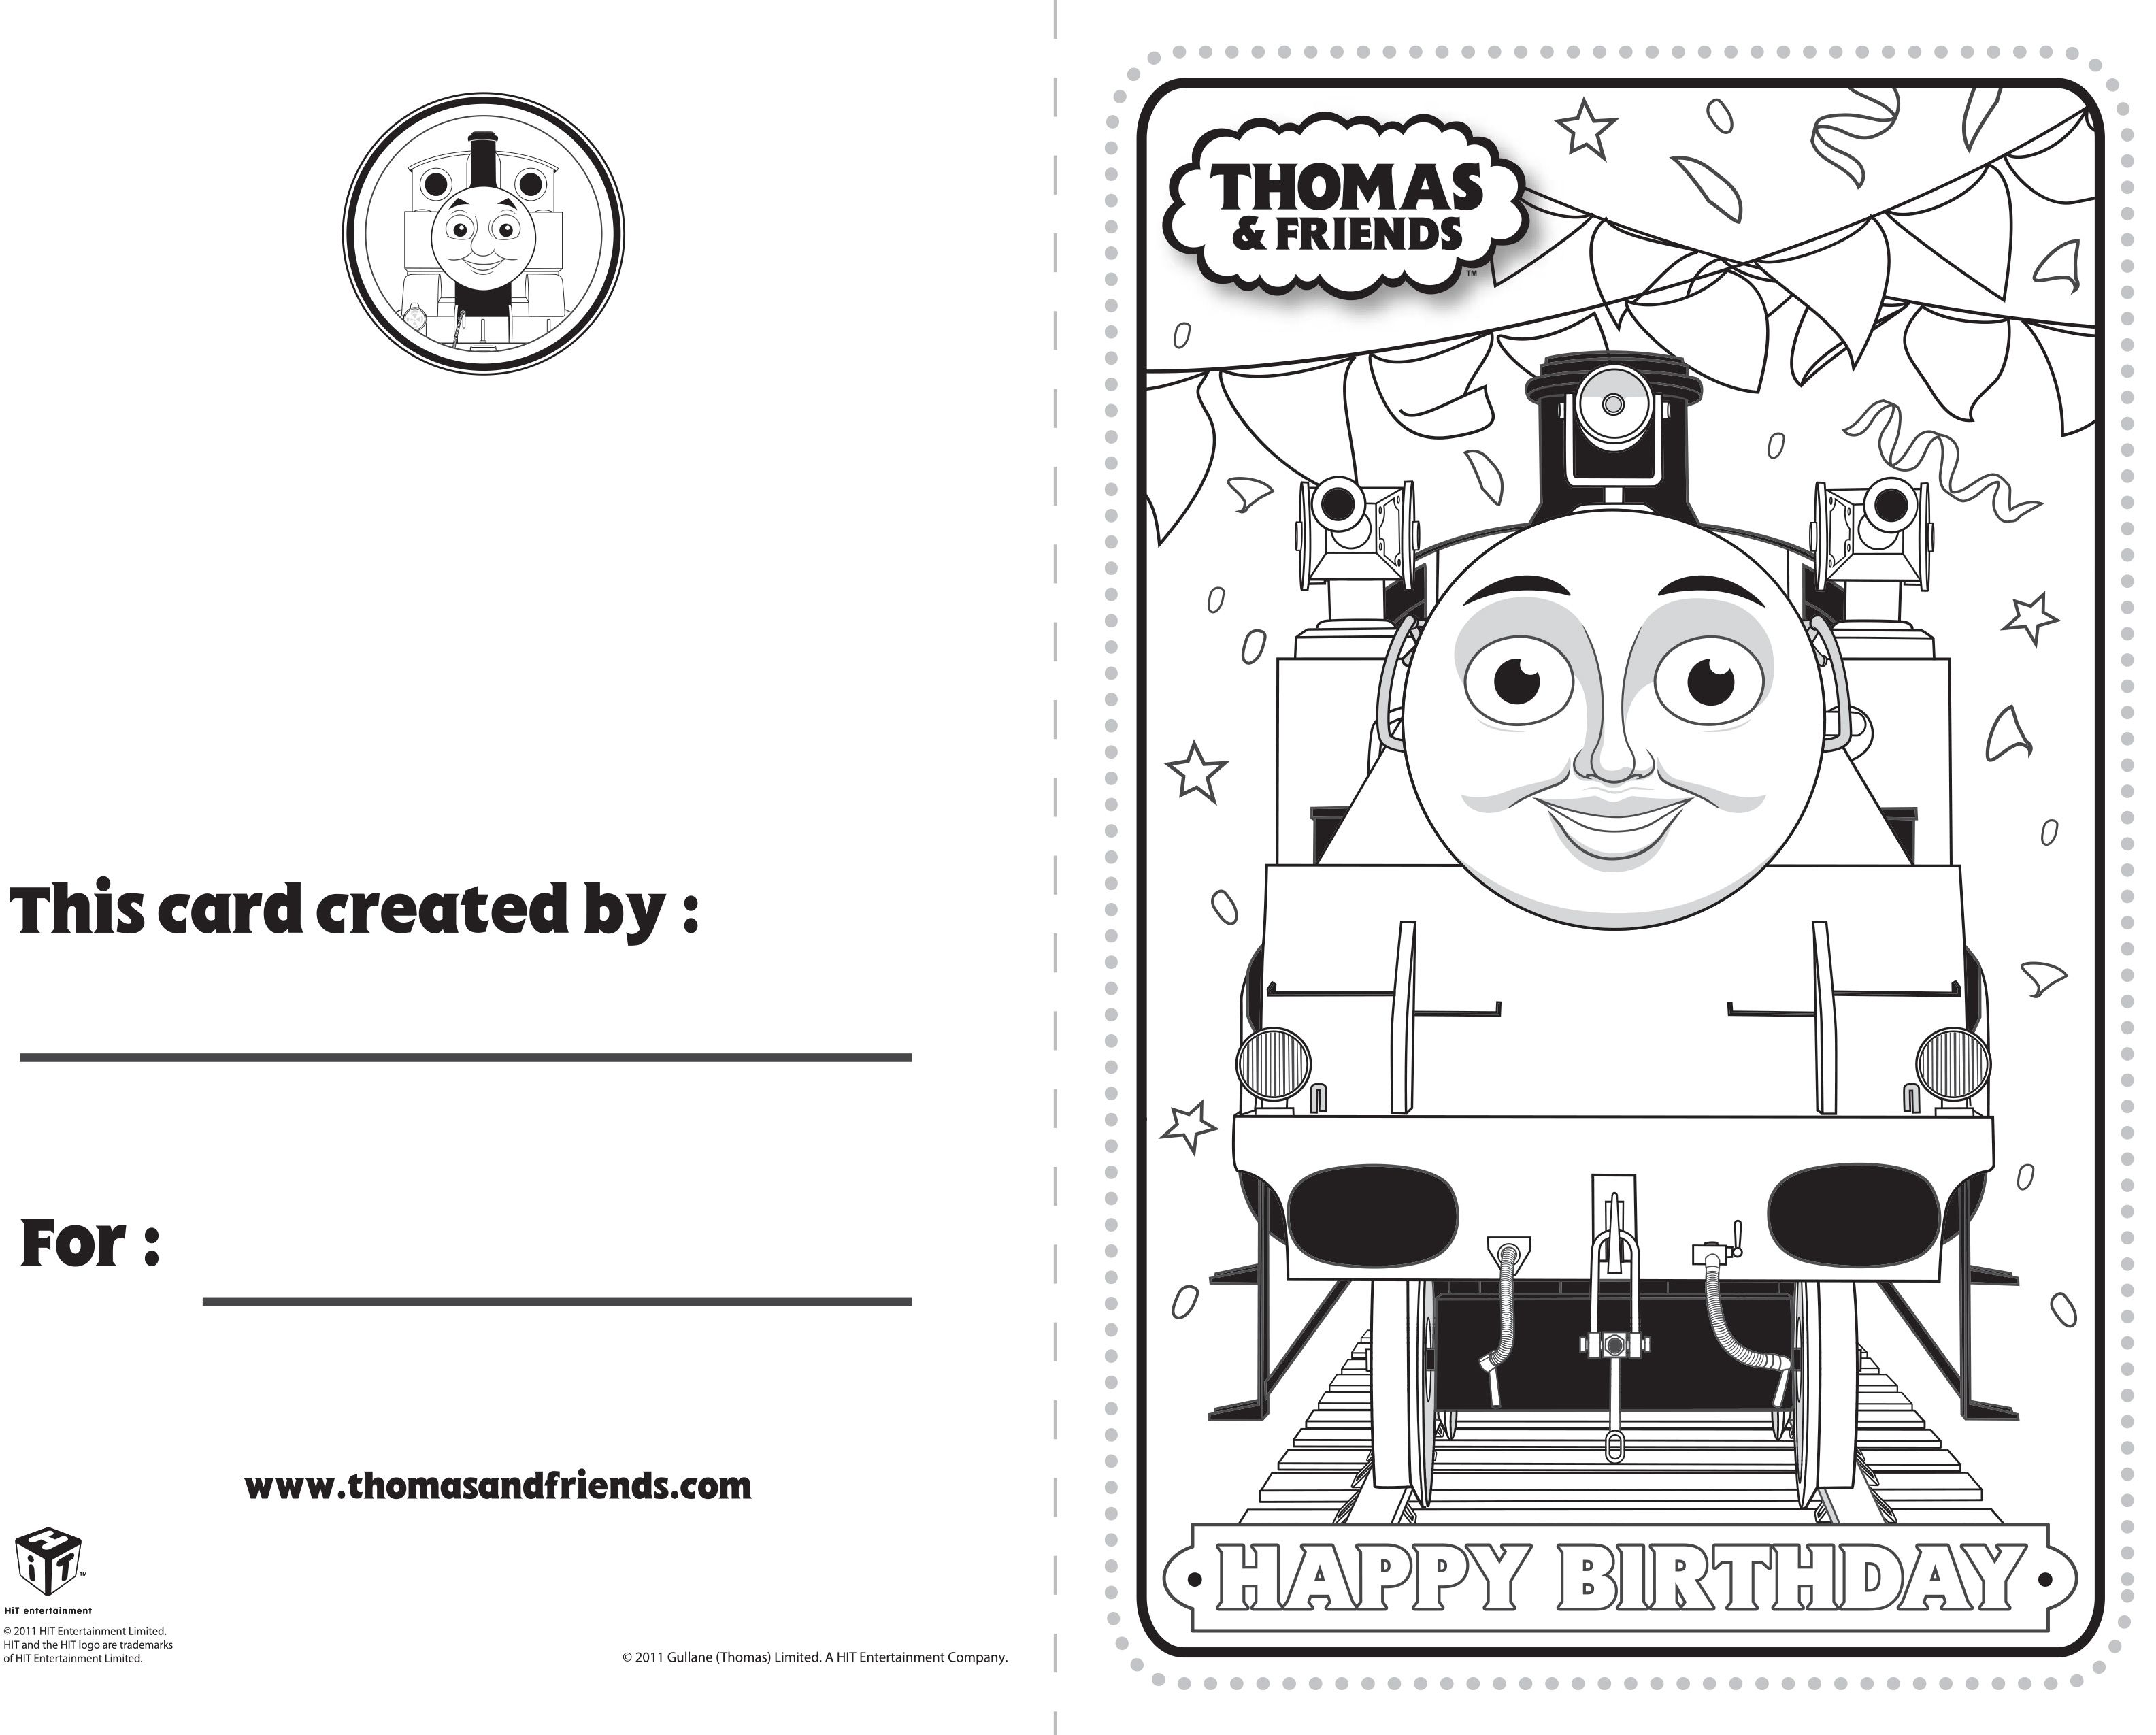 Thomas And Friends Birthday Card Belle Thomasandfriends Birthdaycard Printable Birthday Cards For Friends Thomas And Friends Friend Birthday